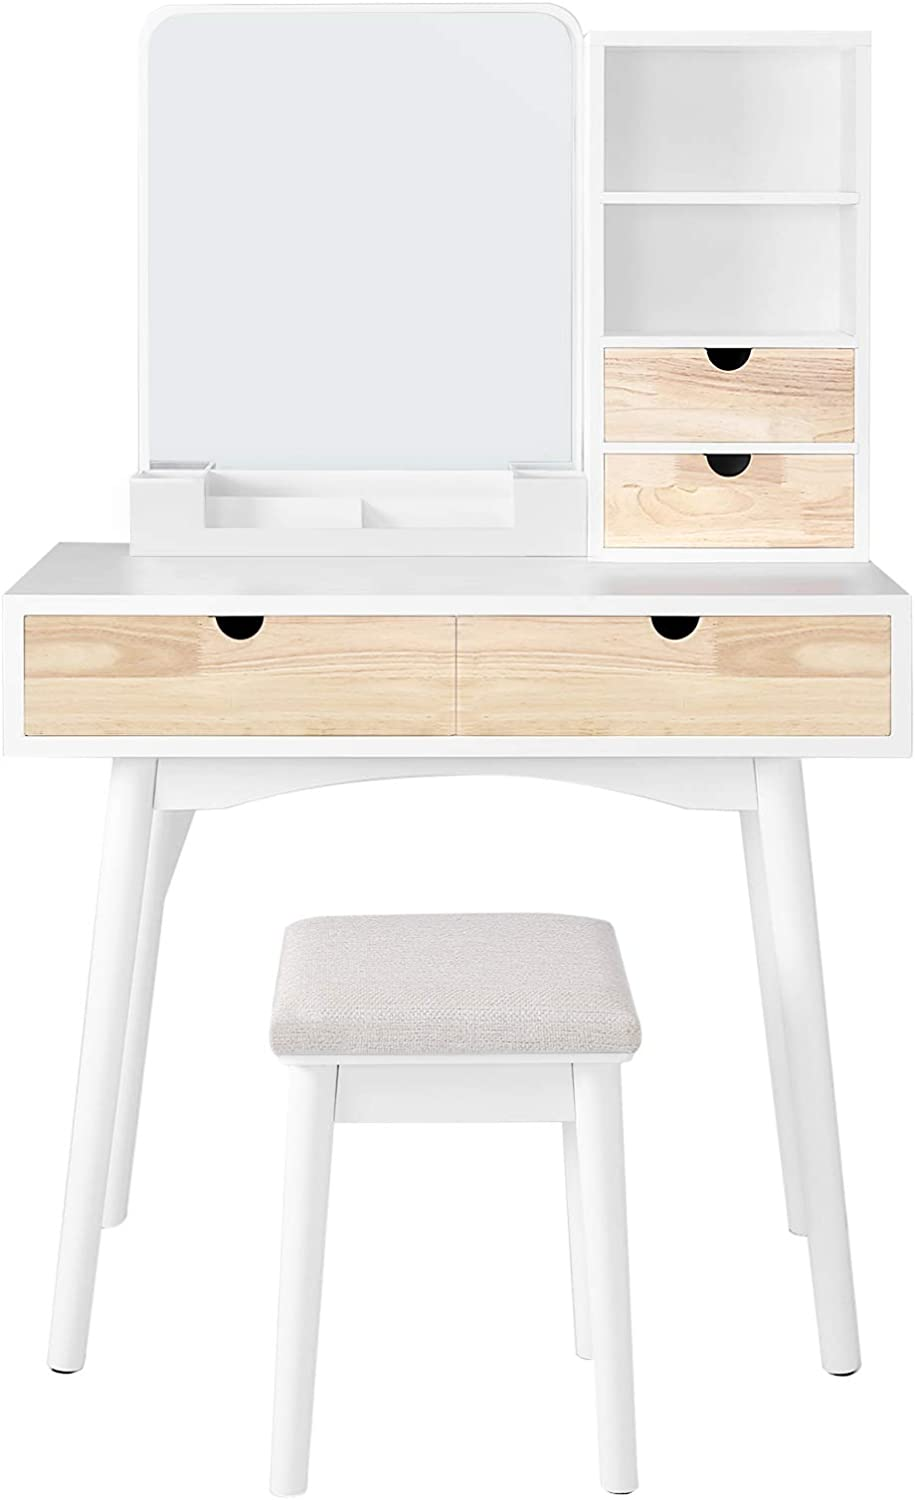 VASAGLE, Multifunctional Computer Armoires Hutches Vanity Set Makeup Dressing Table with Mirror, Cushioned Stool, for Bedroom, 35.4 x 15.7 x 57.5 Inches, White and Natural